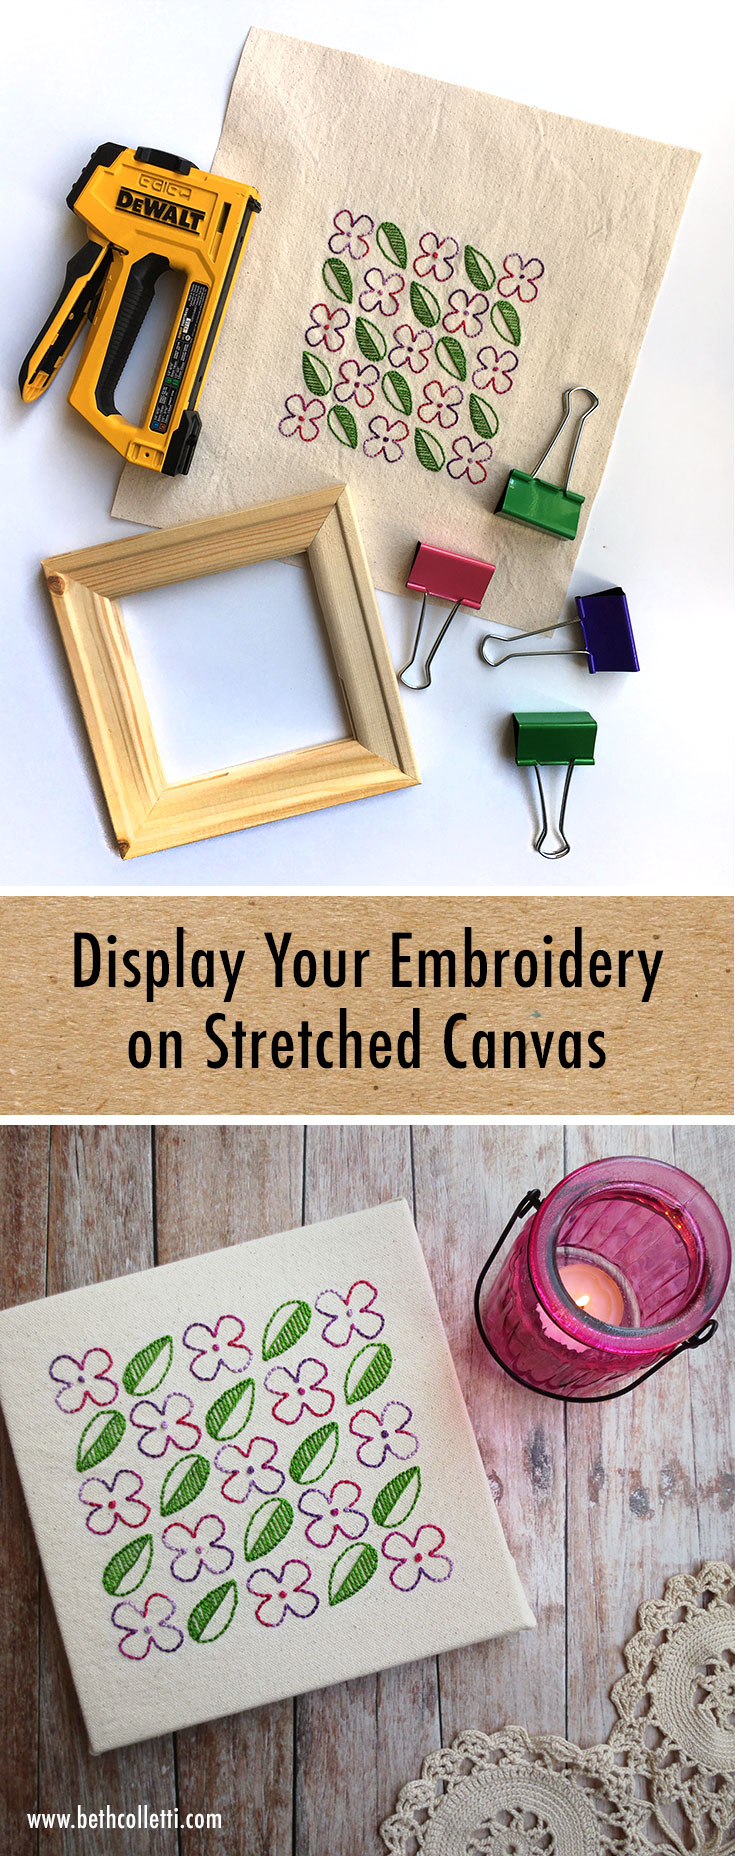 The Easiest & Fastest Way to Display Embroidery on Stretched Canvas